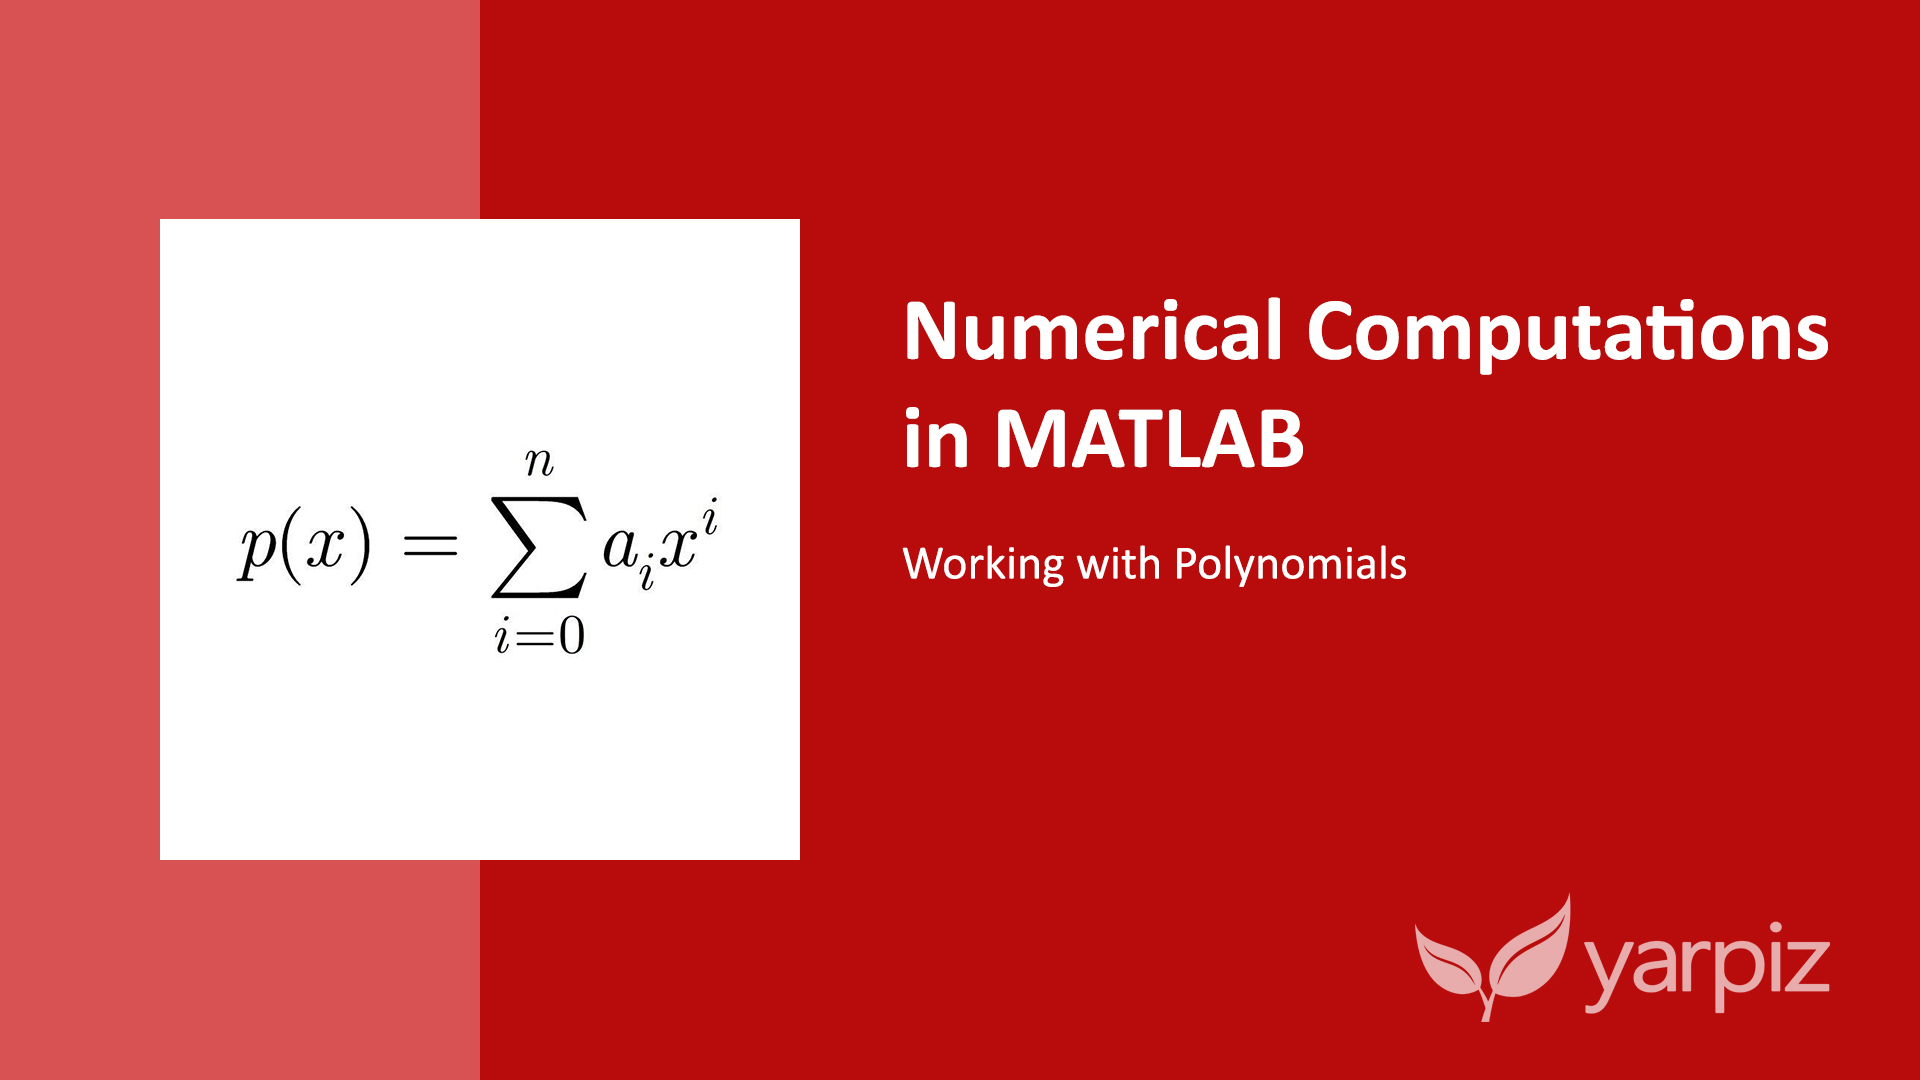 Numerical Computations in MATLAB: Working with Polynomials